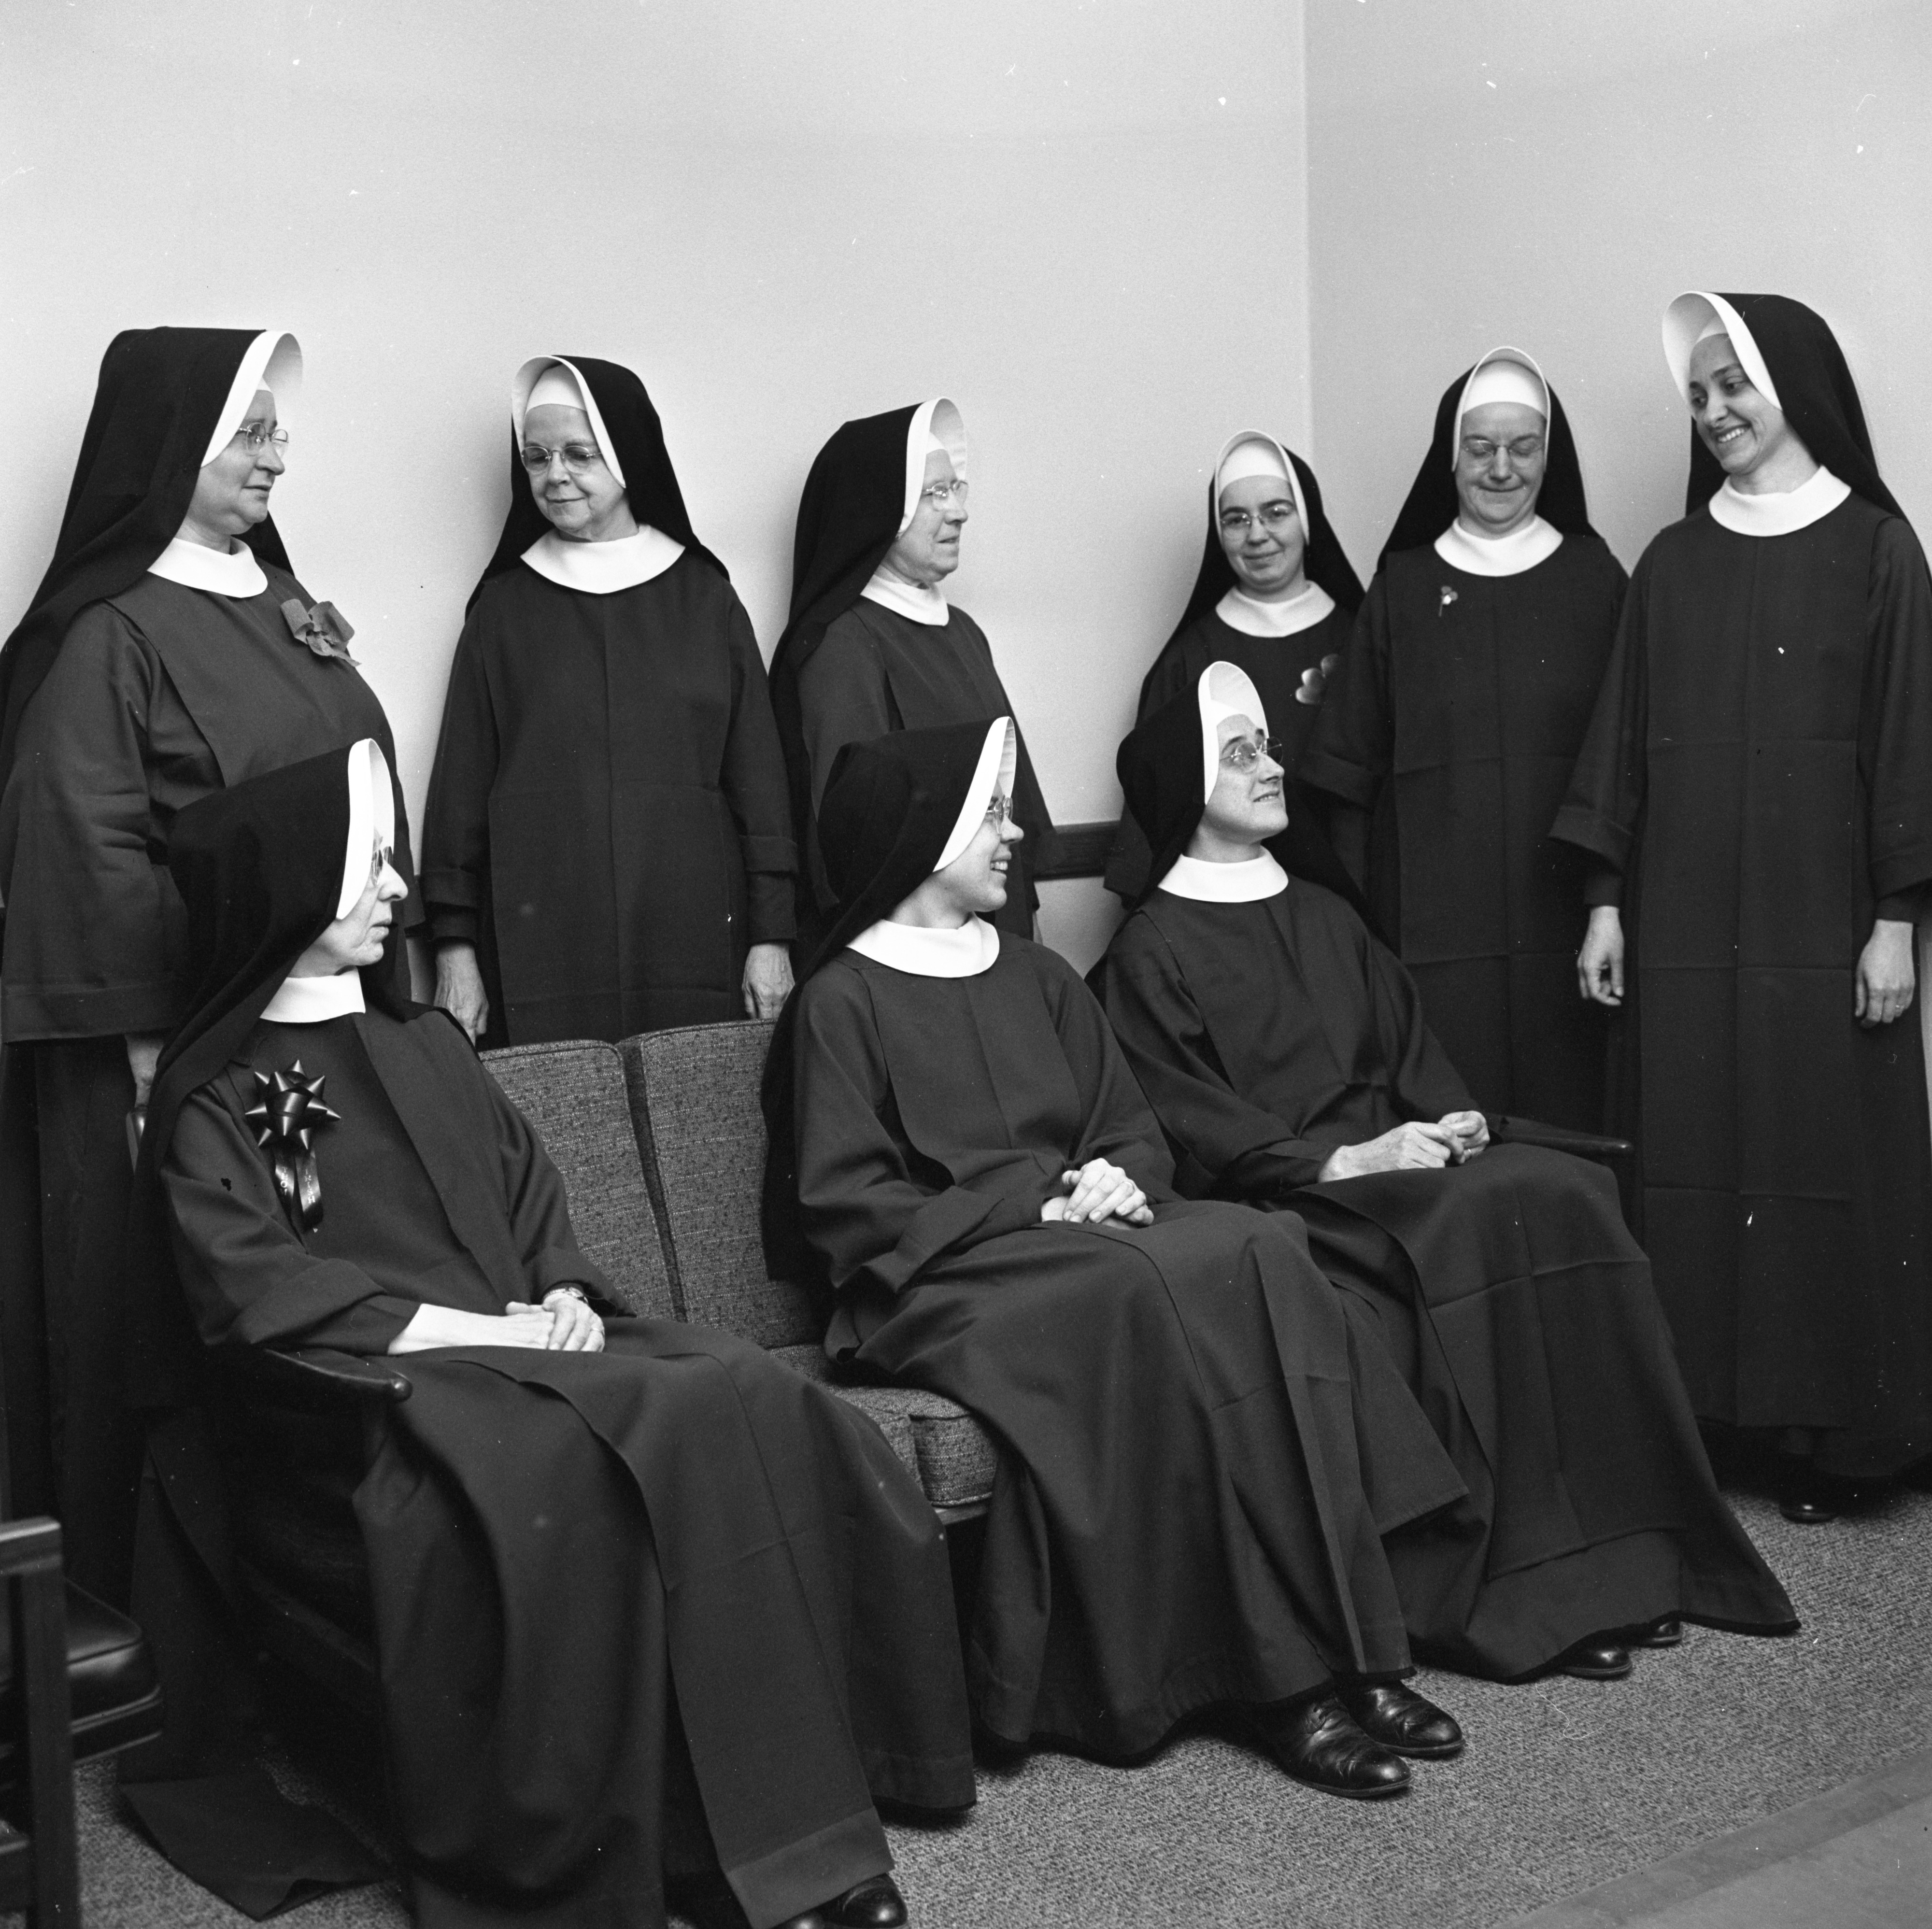 Nuns Of Irish Descent Wear Green Accessories On St. Patrick's Day At St. Thomas School, March 1967 image